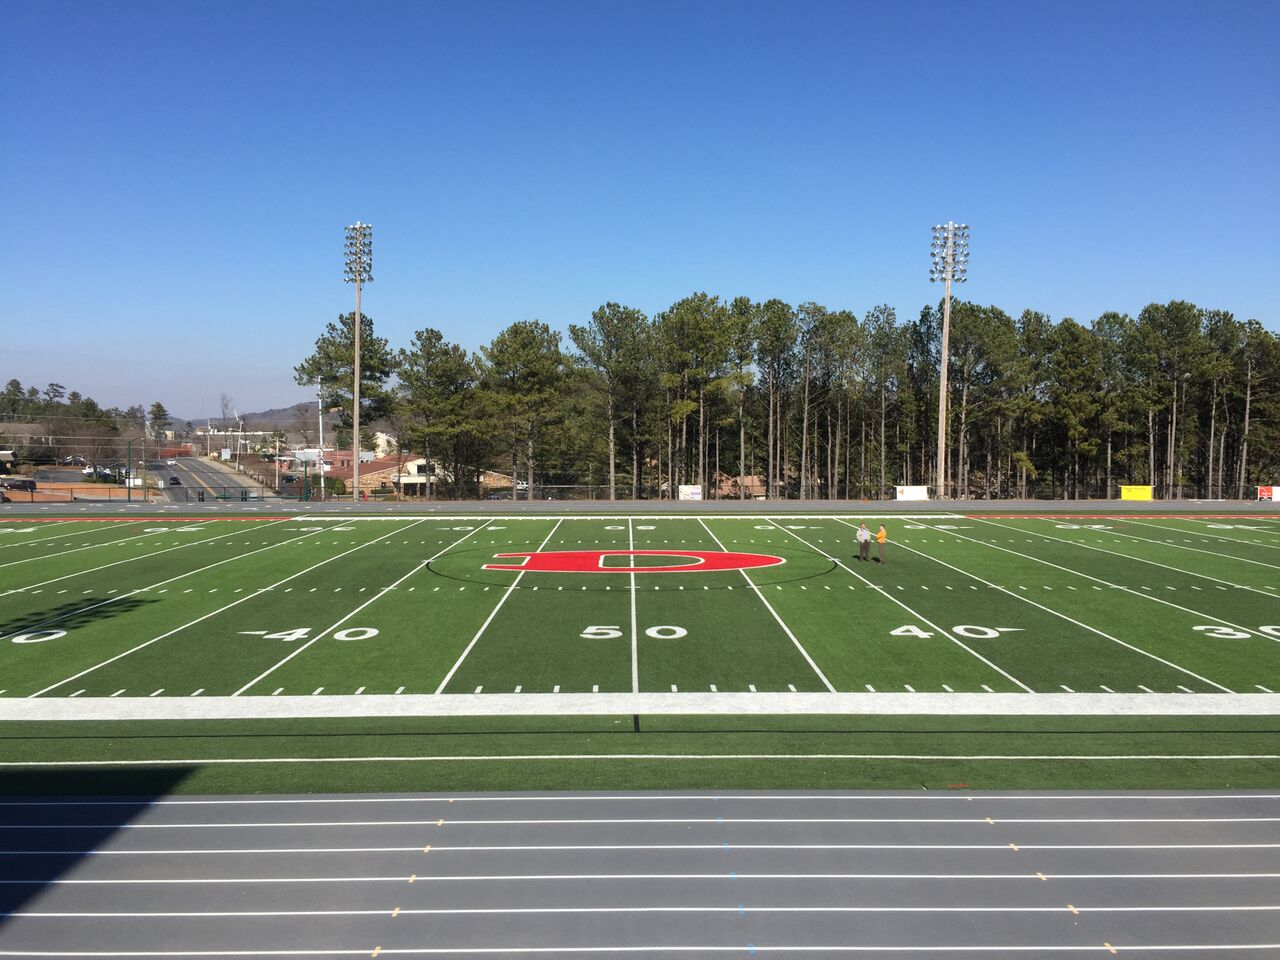 what sports can i play on artificial turf in orlando